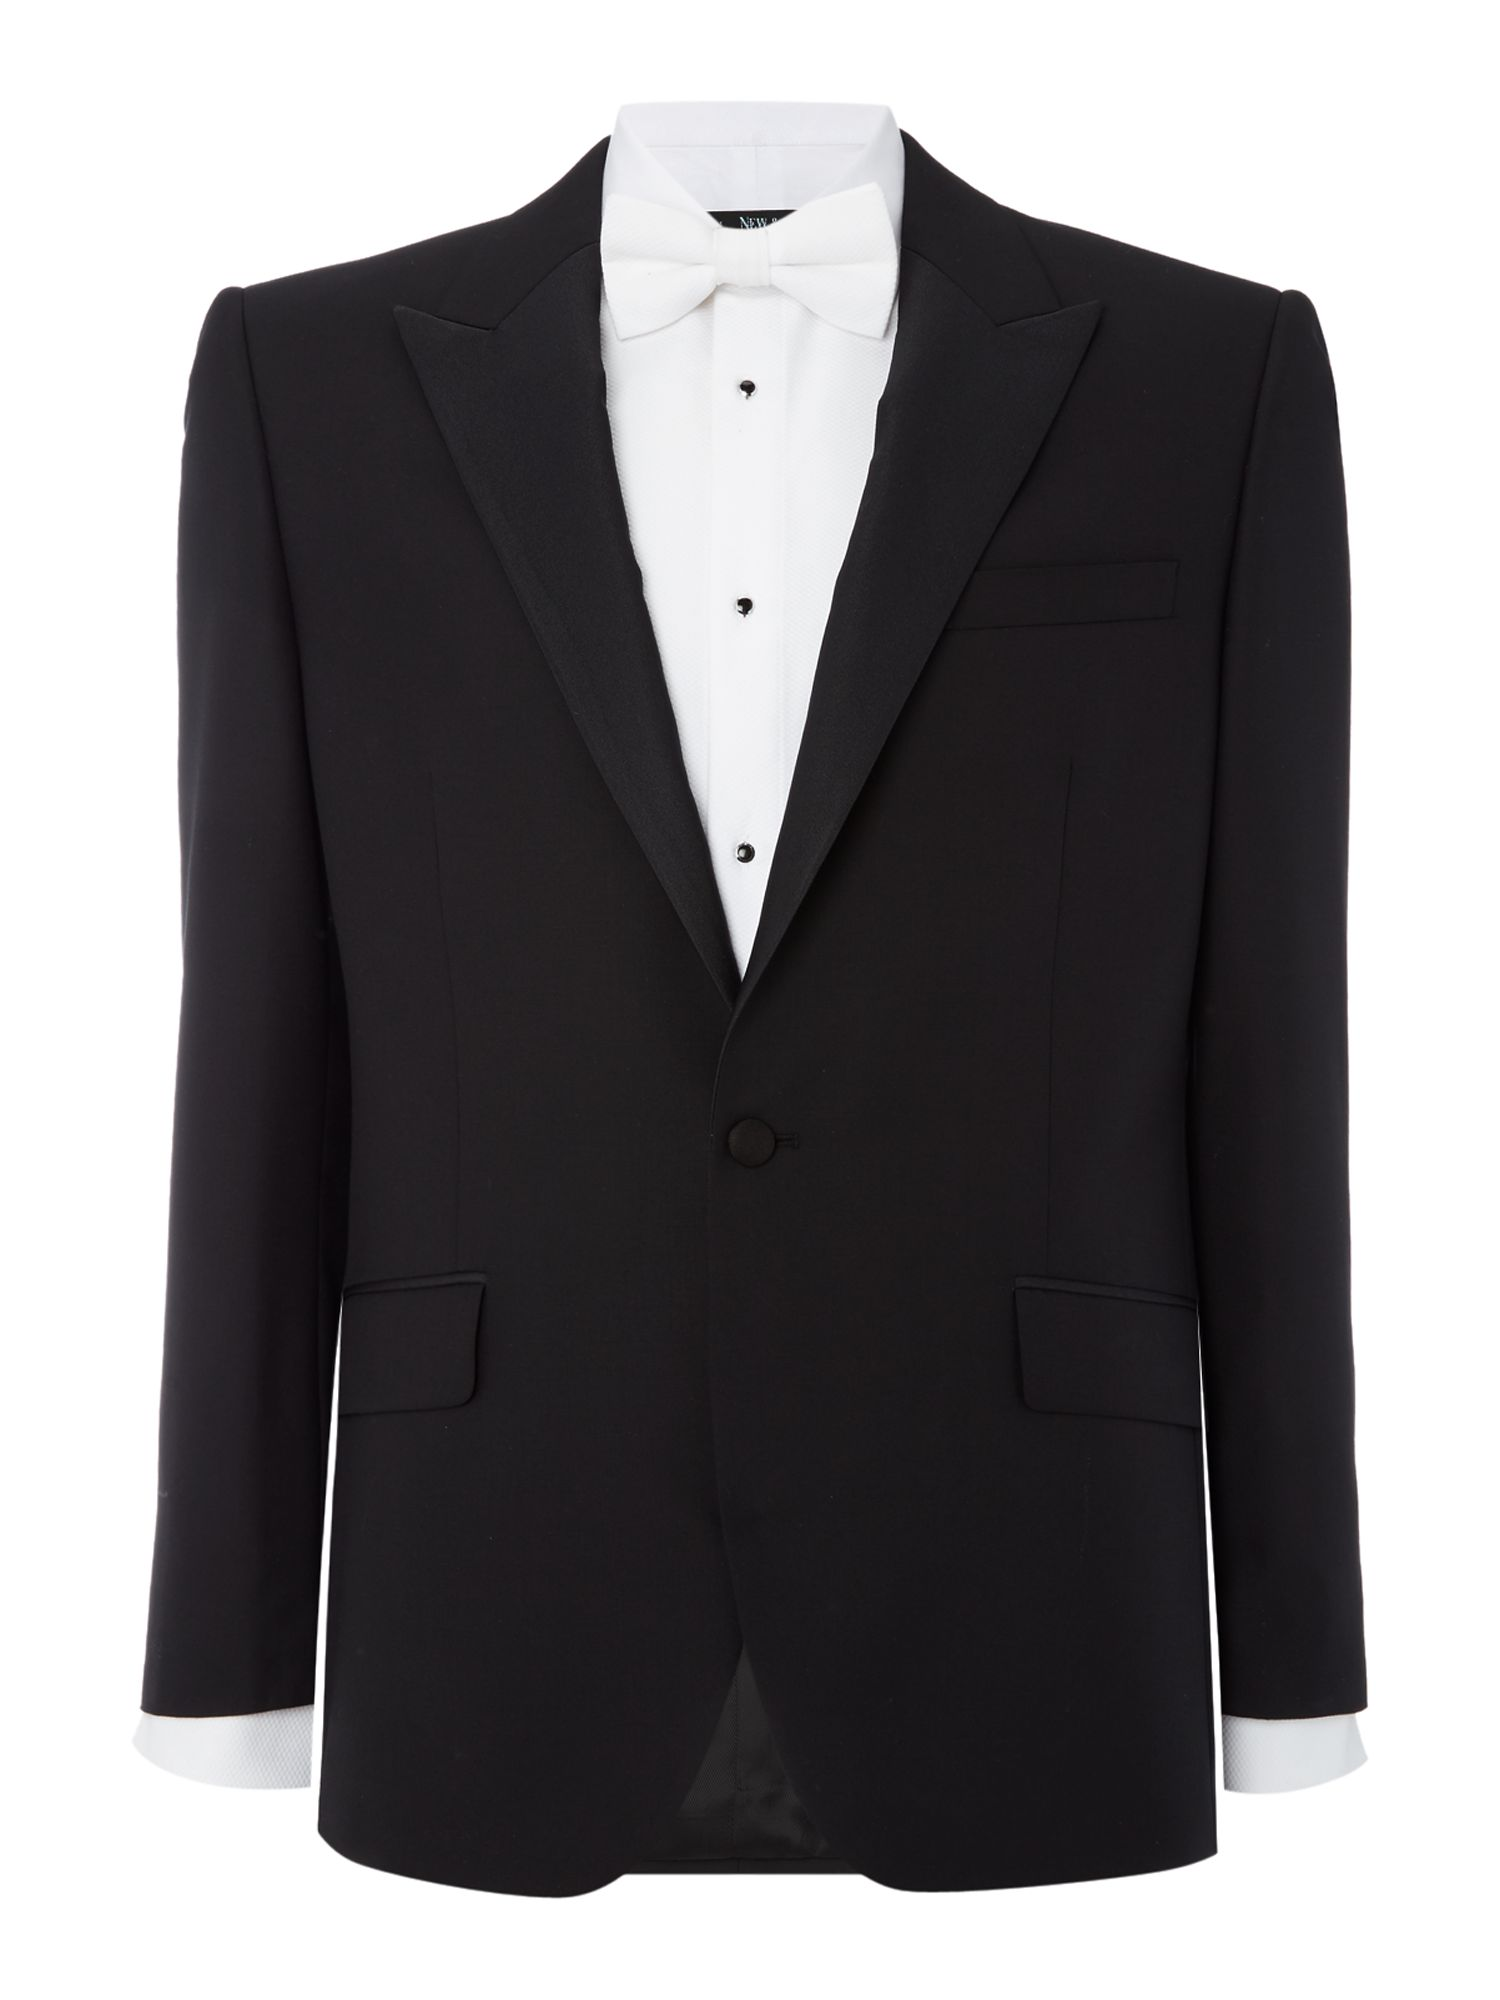 Find a Dinner Jacket for Men and a Dinner Jacket for Boys at Macy's. Macy's Presents: The Edit - A curated mix of fashion and inspiration Check It Out Free Shipping with $99 purchase + Free Store Pickup.